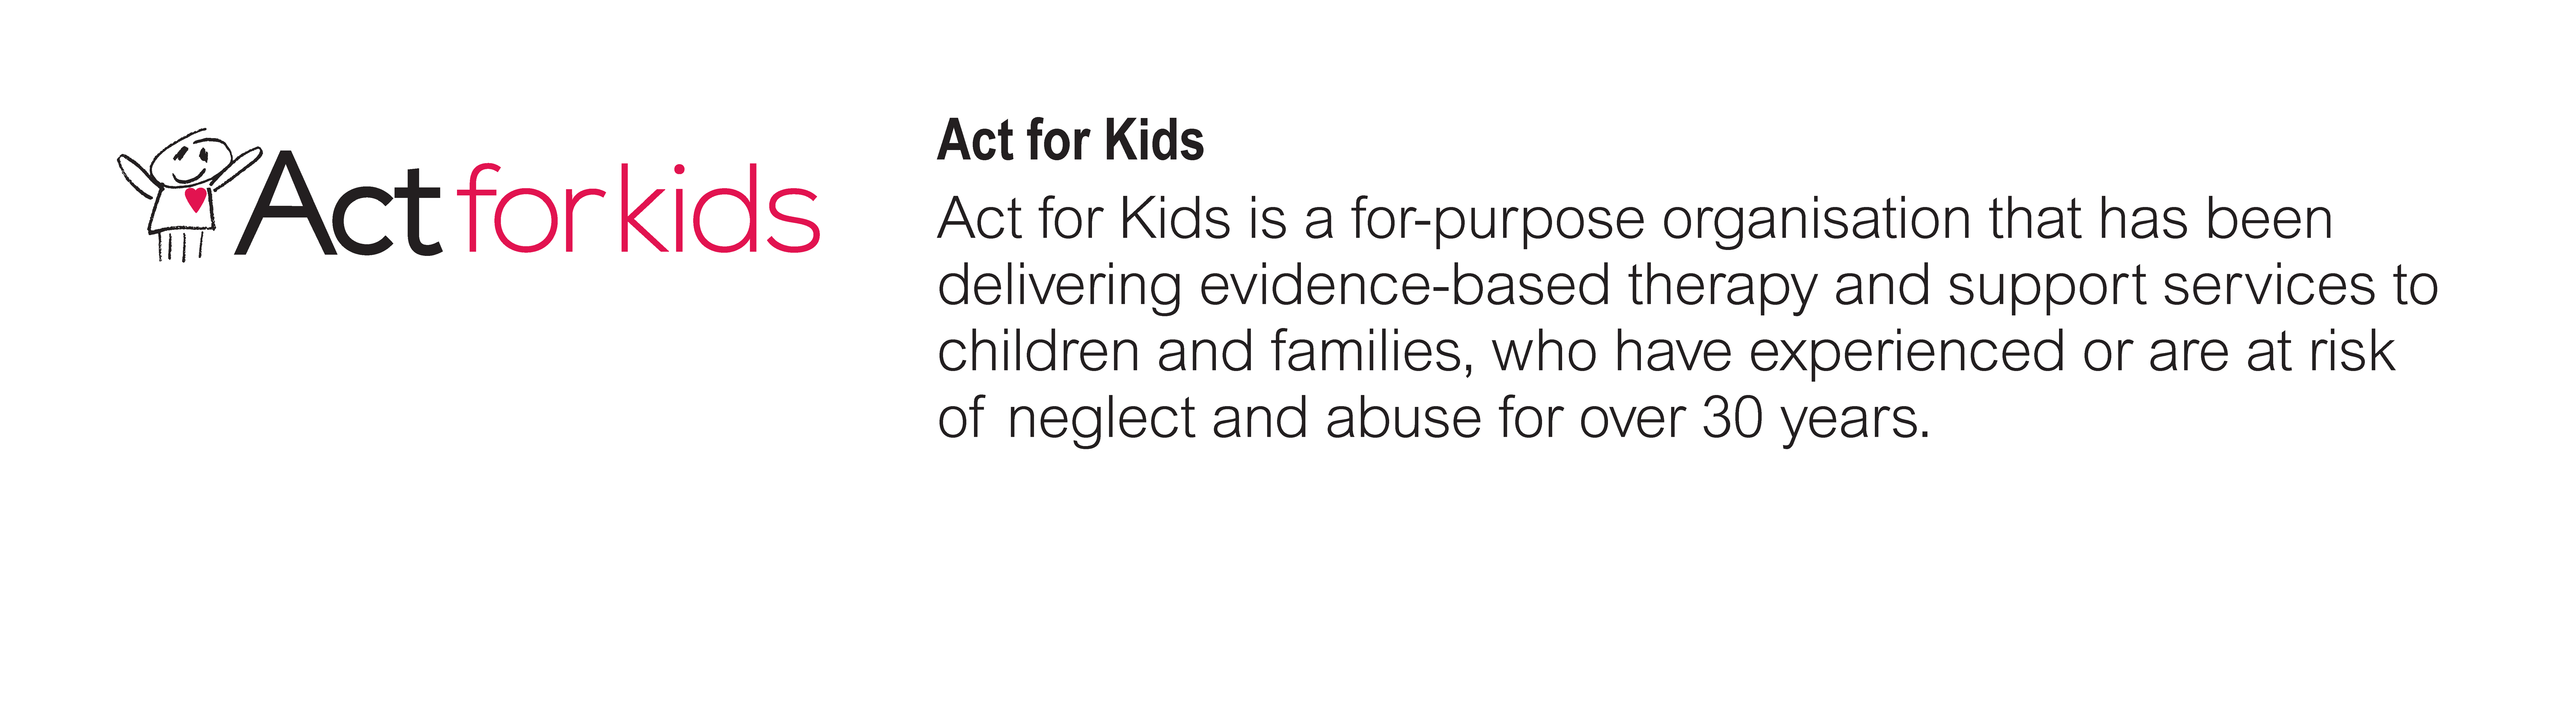 Charity_Act for Kids_colour